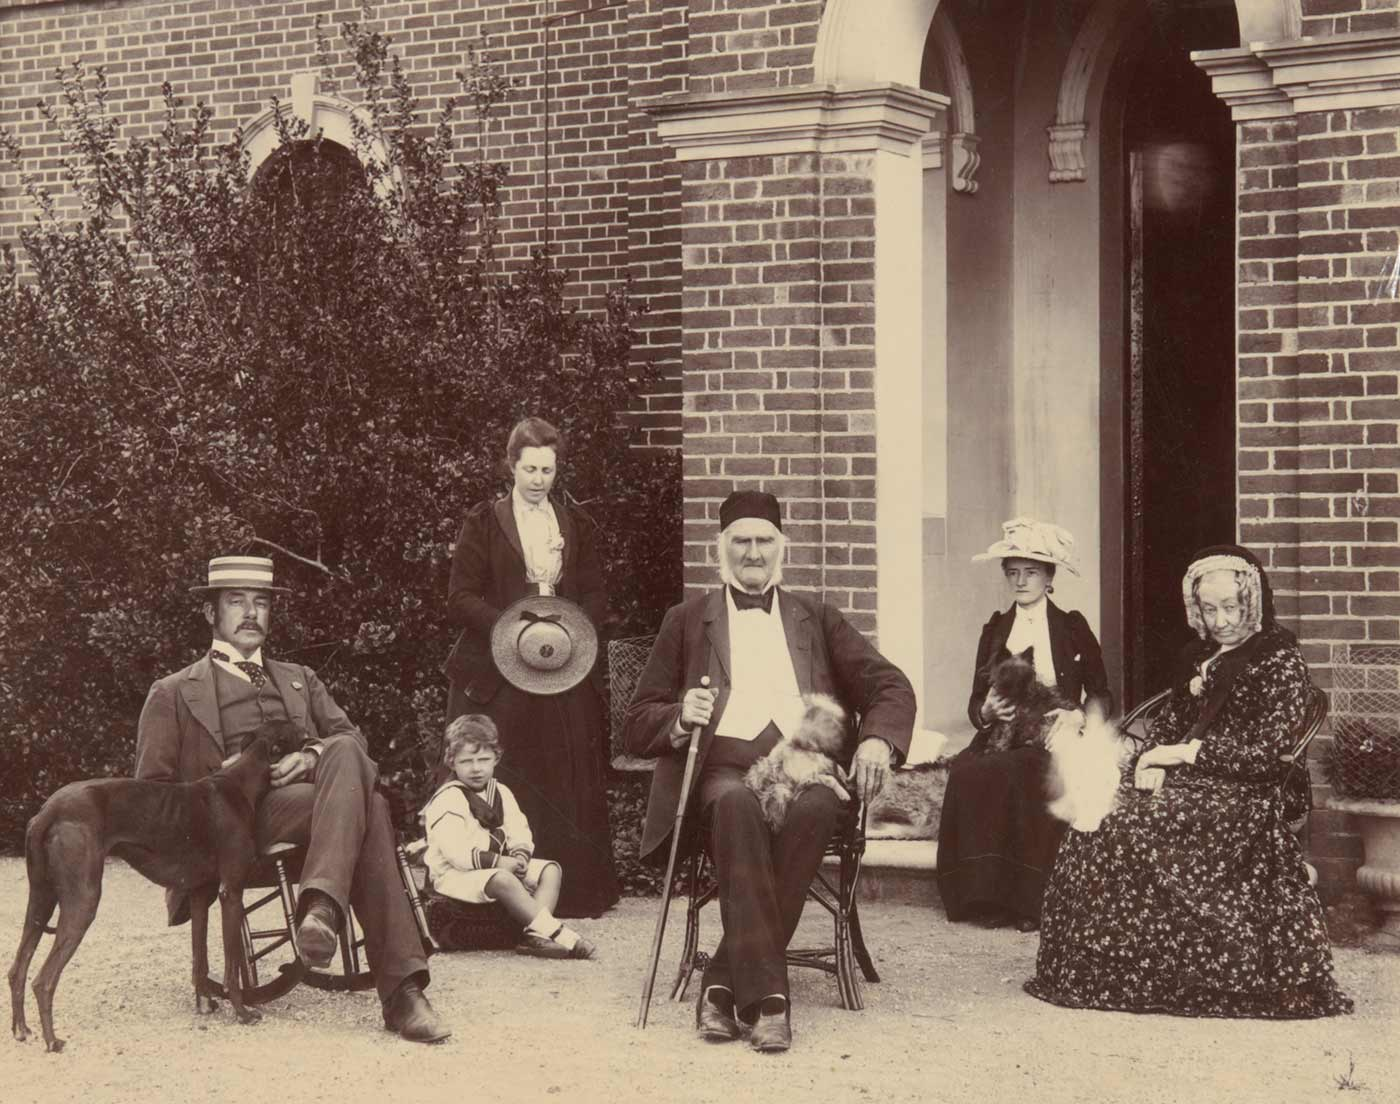 Black and white photo showing two men, three women and a child outside a brick building. The man at centre holds a walking stick and has a small dog sitting on this lap. The other man sits in a rocking chair, with the head of a kangaroo dog resting on his lap. To his right is a small boy in a sailor suit, and a woman, standing, who is looking down. The women seated, far right, both hav animals resting on their laps.